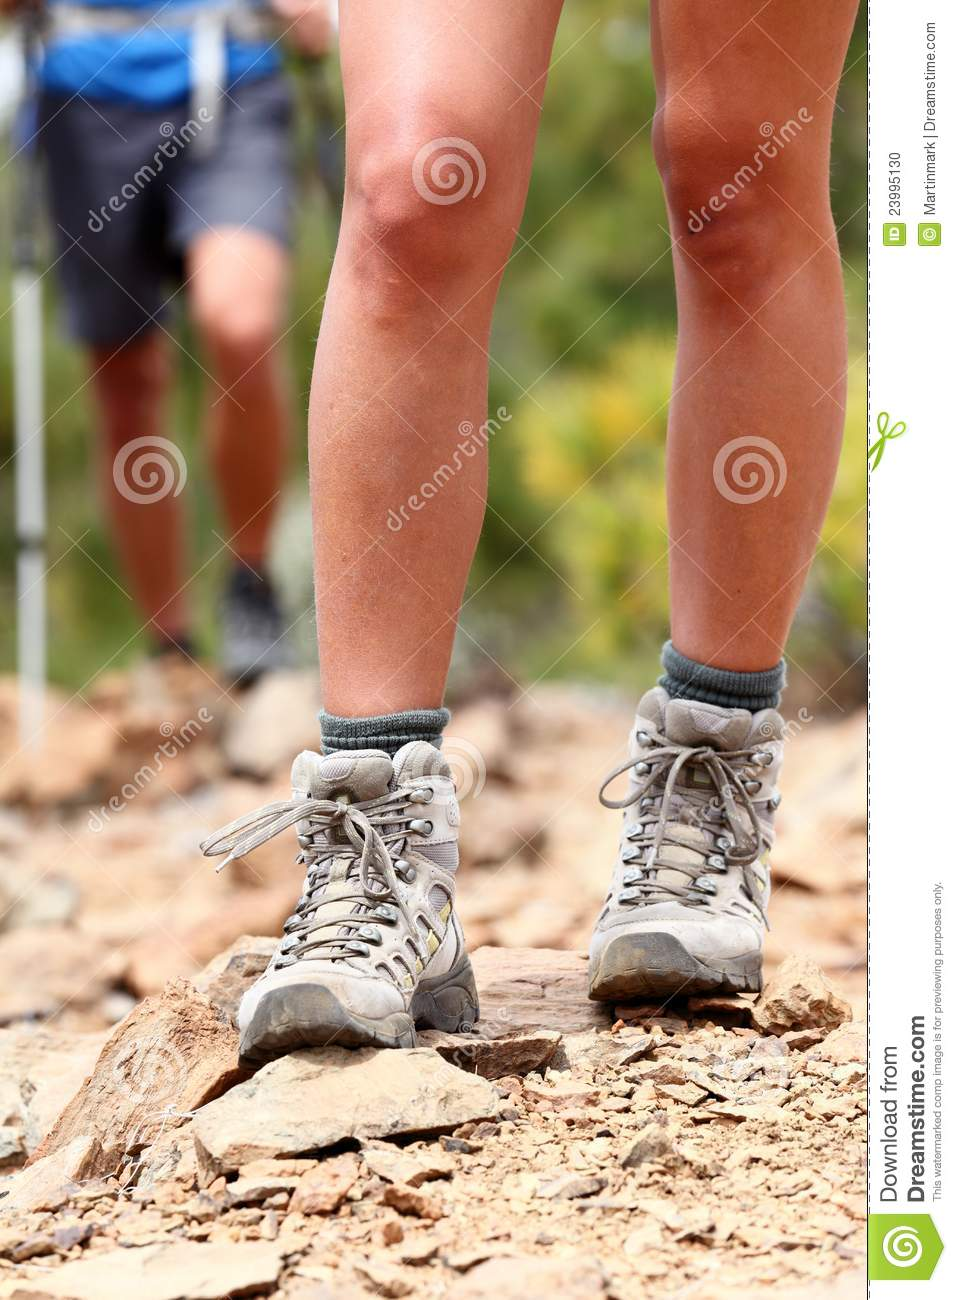 Hiker Shoes - Hiking Boots Walking Stock Photo - Image: 23995130